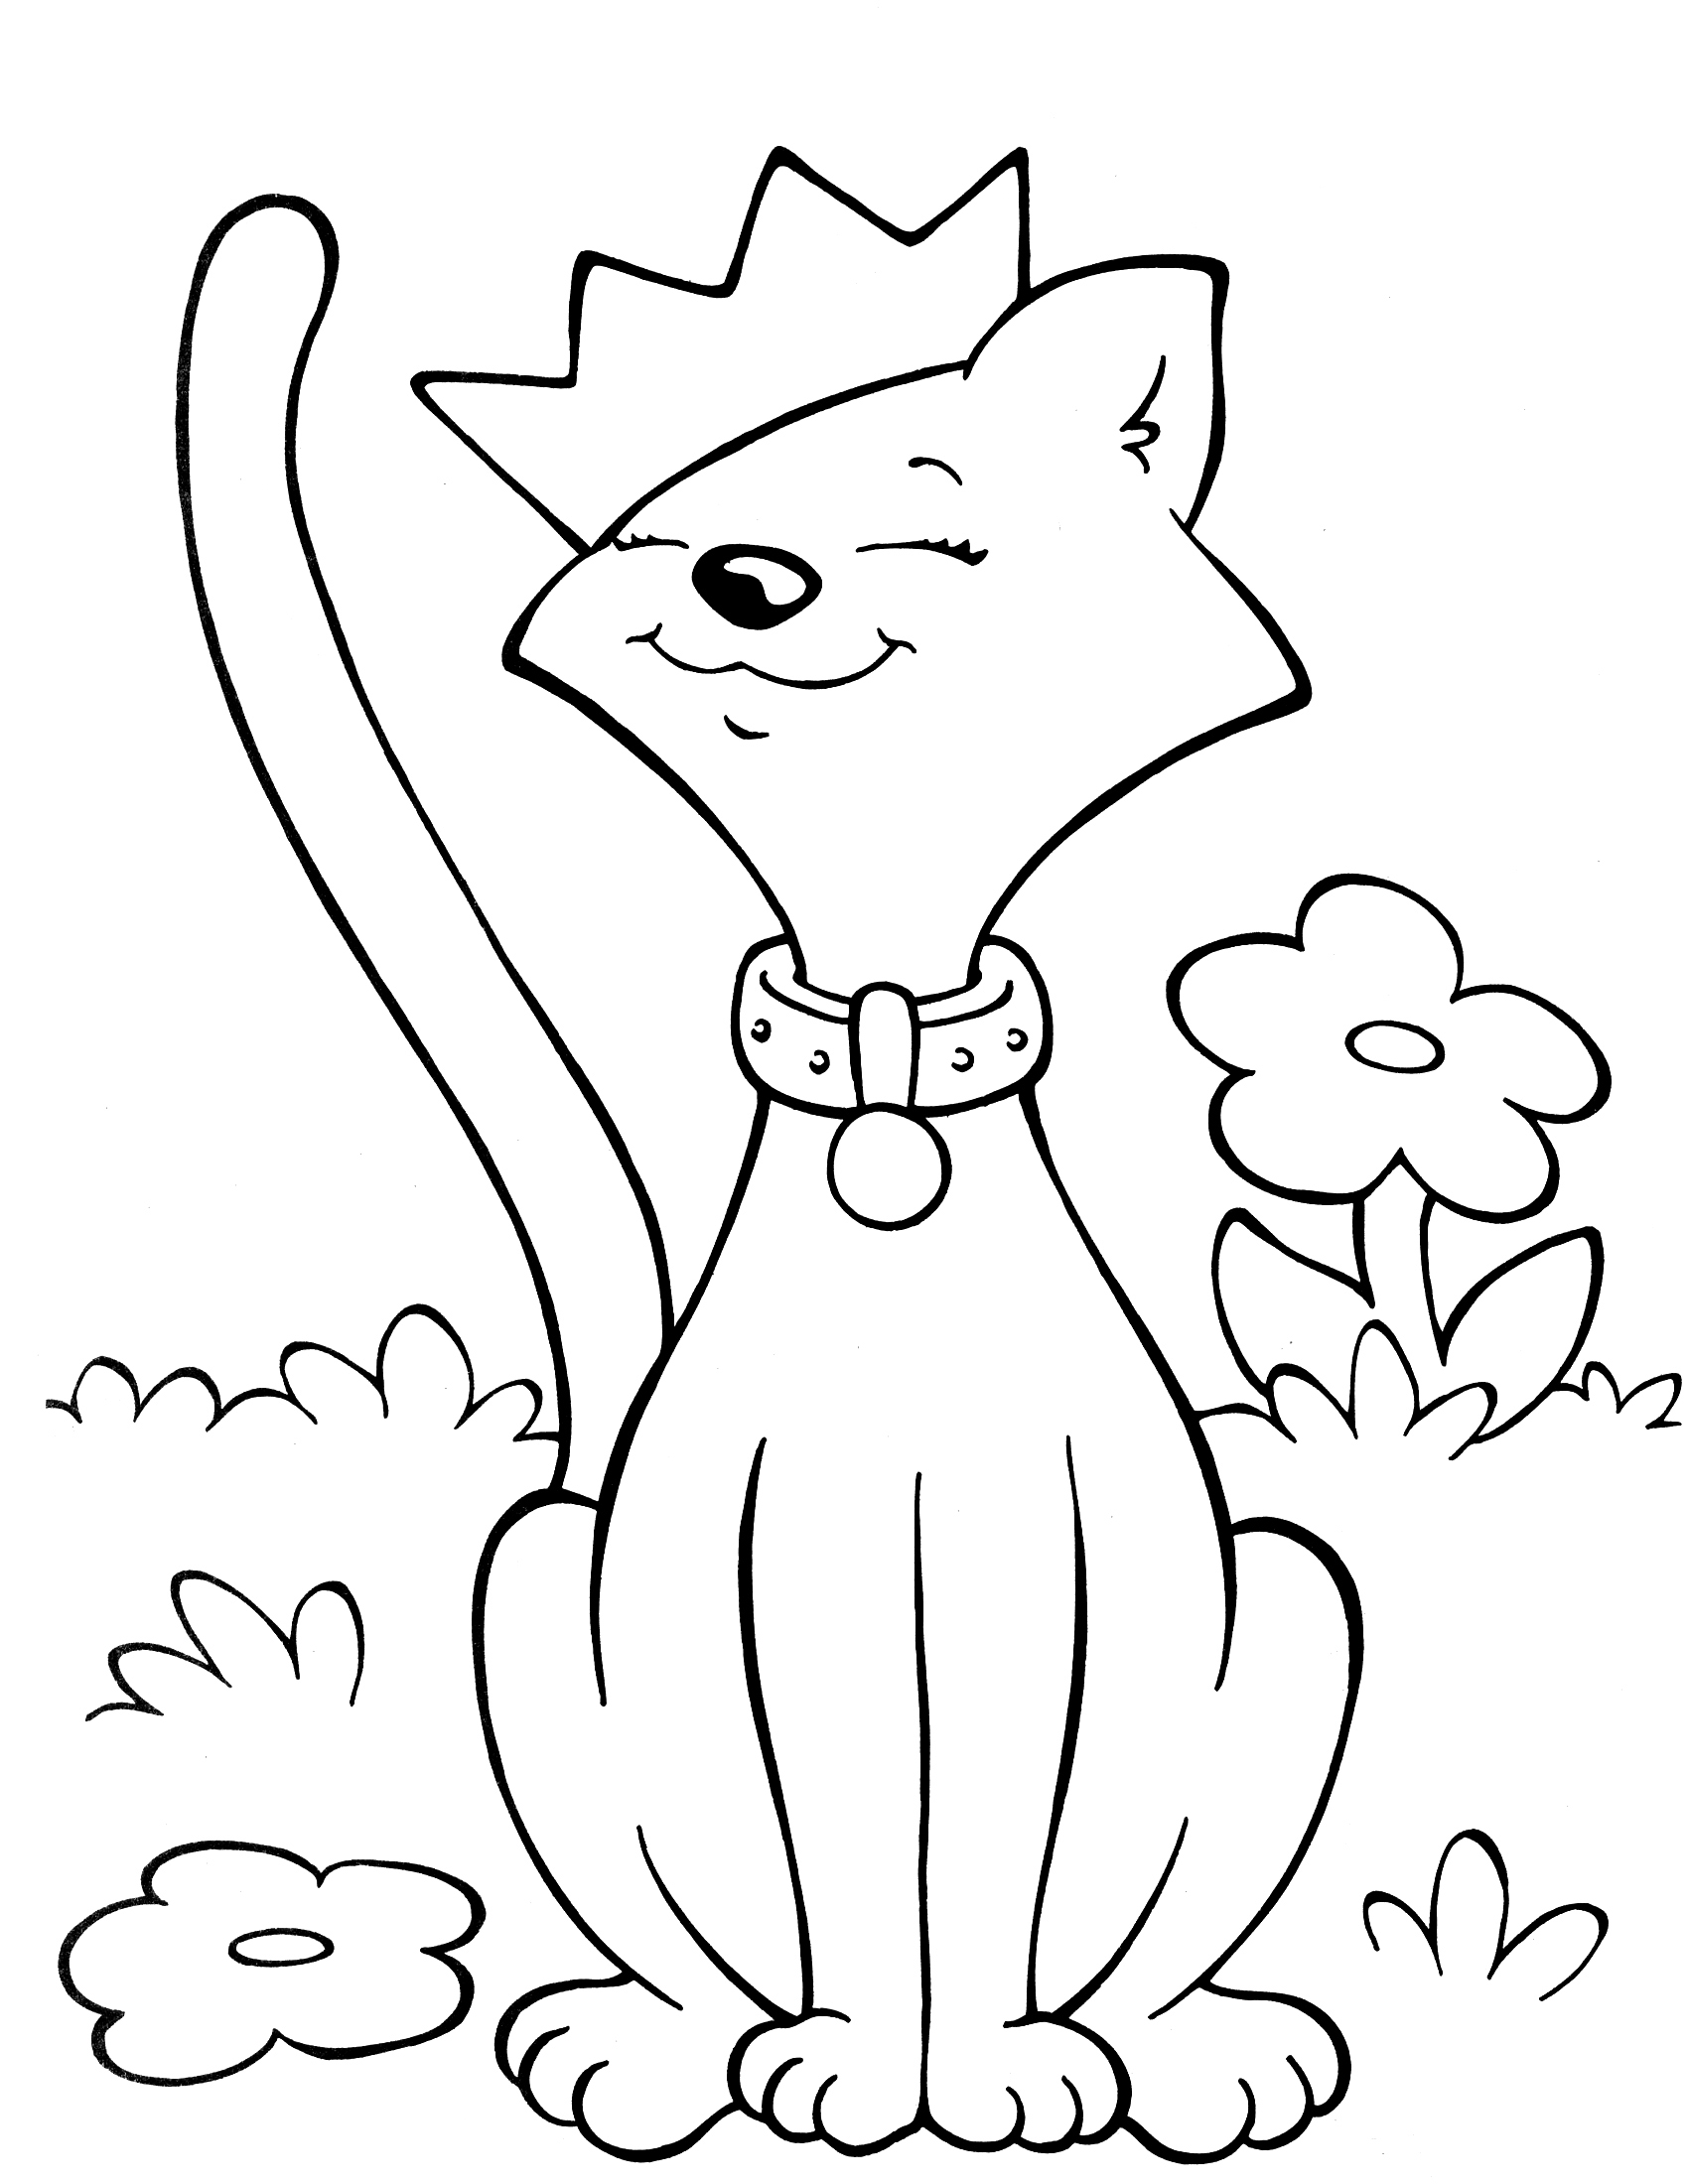 1700x2200 Crayola Coloring Pages For Kids Printable Pretty Draw Page